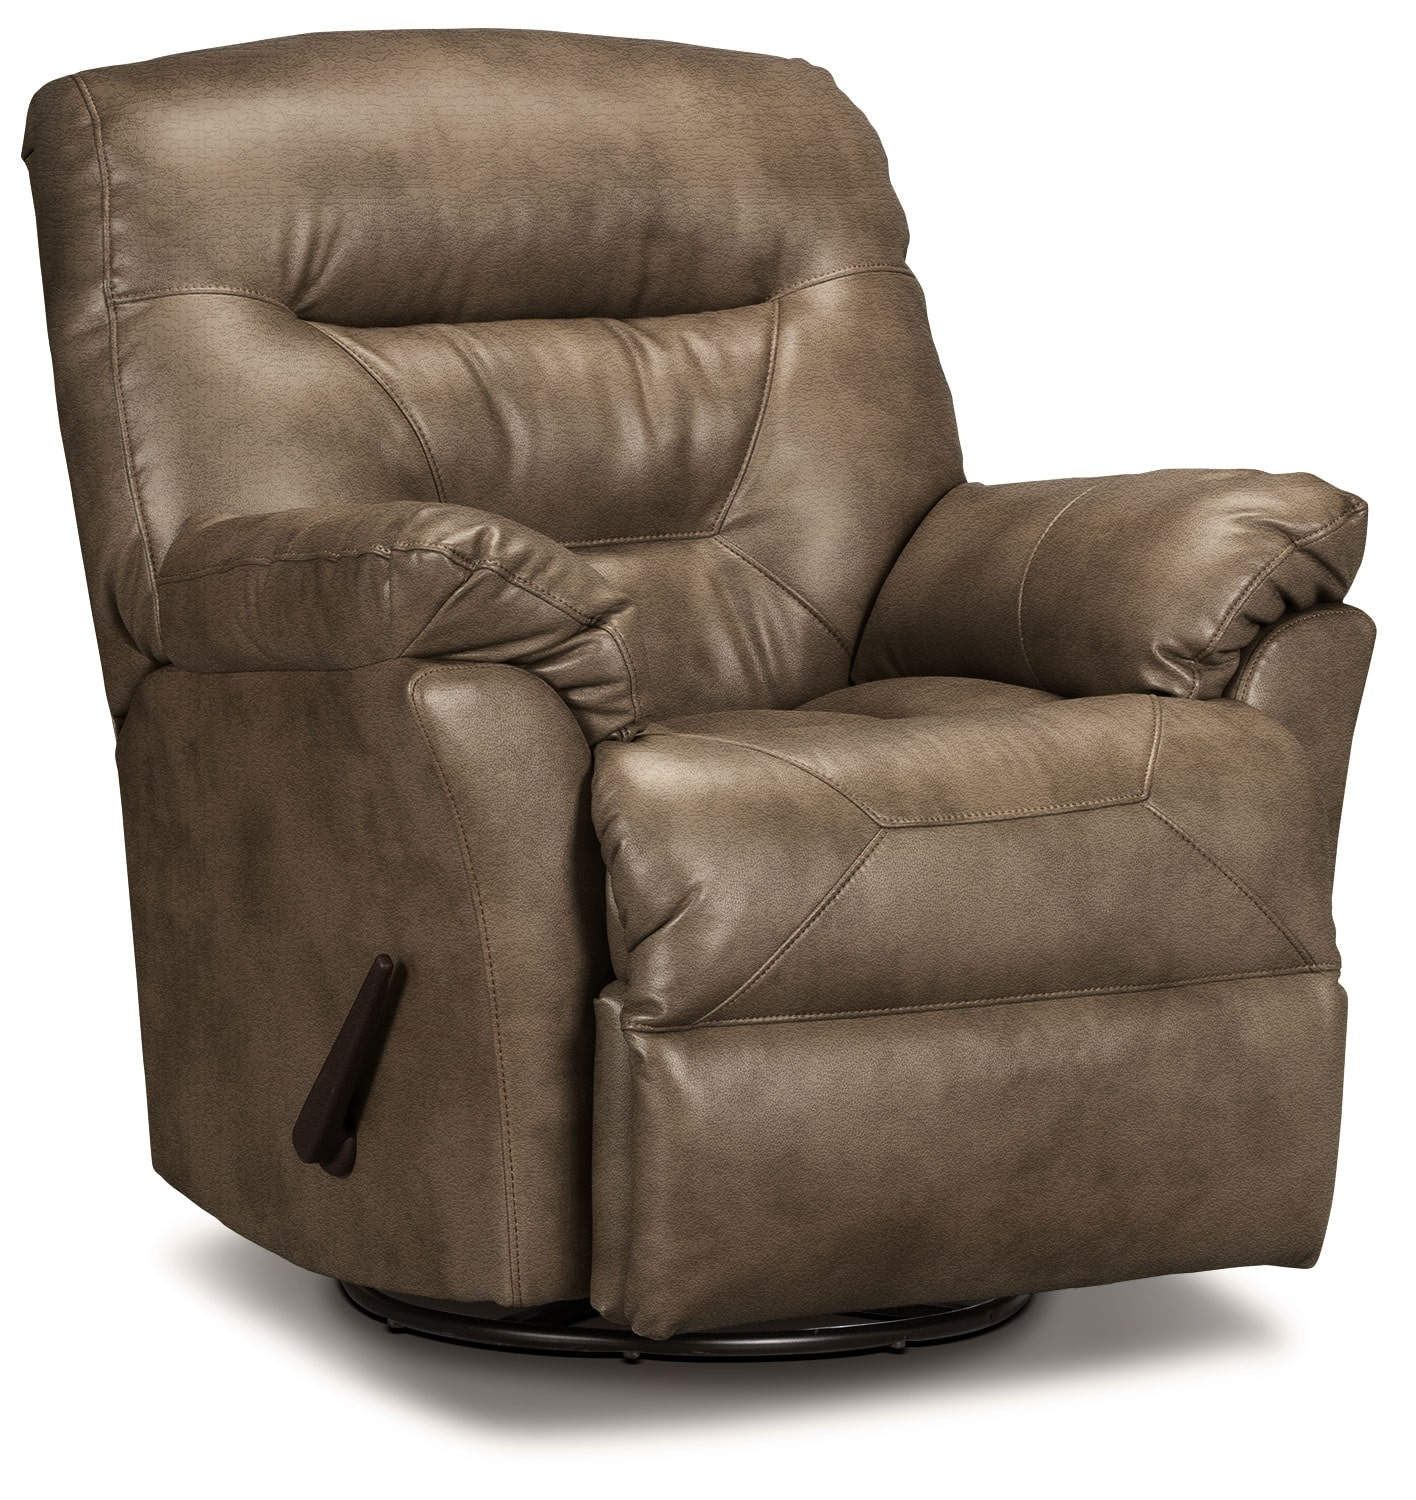 Living Room Furniture - Designed2B Recliner 4579 Leather-Look Fabric Swivel Glider Recliner - Tobacco